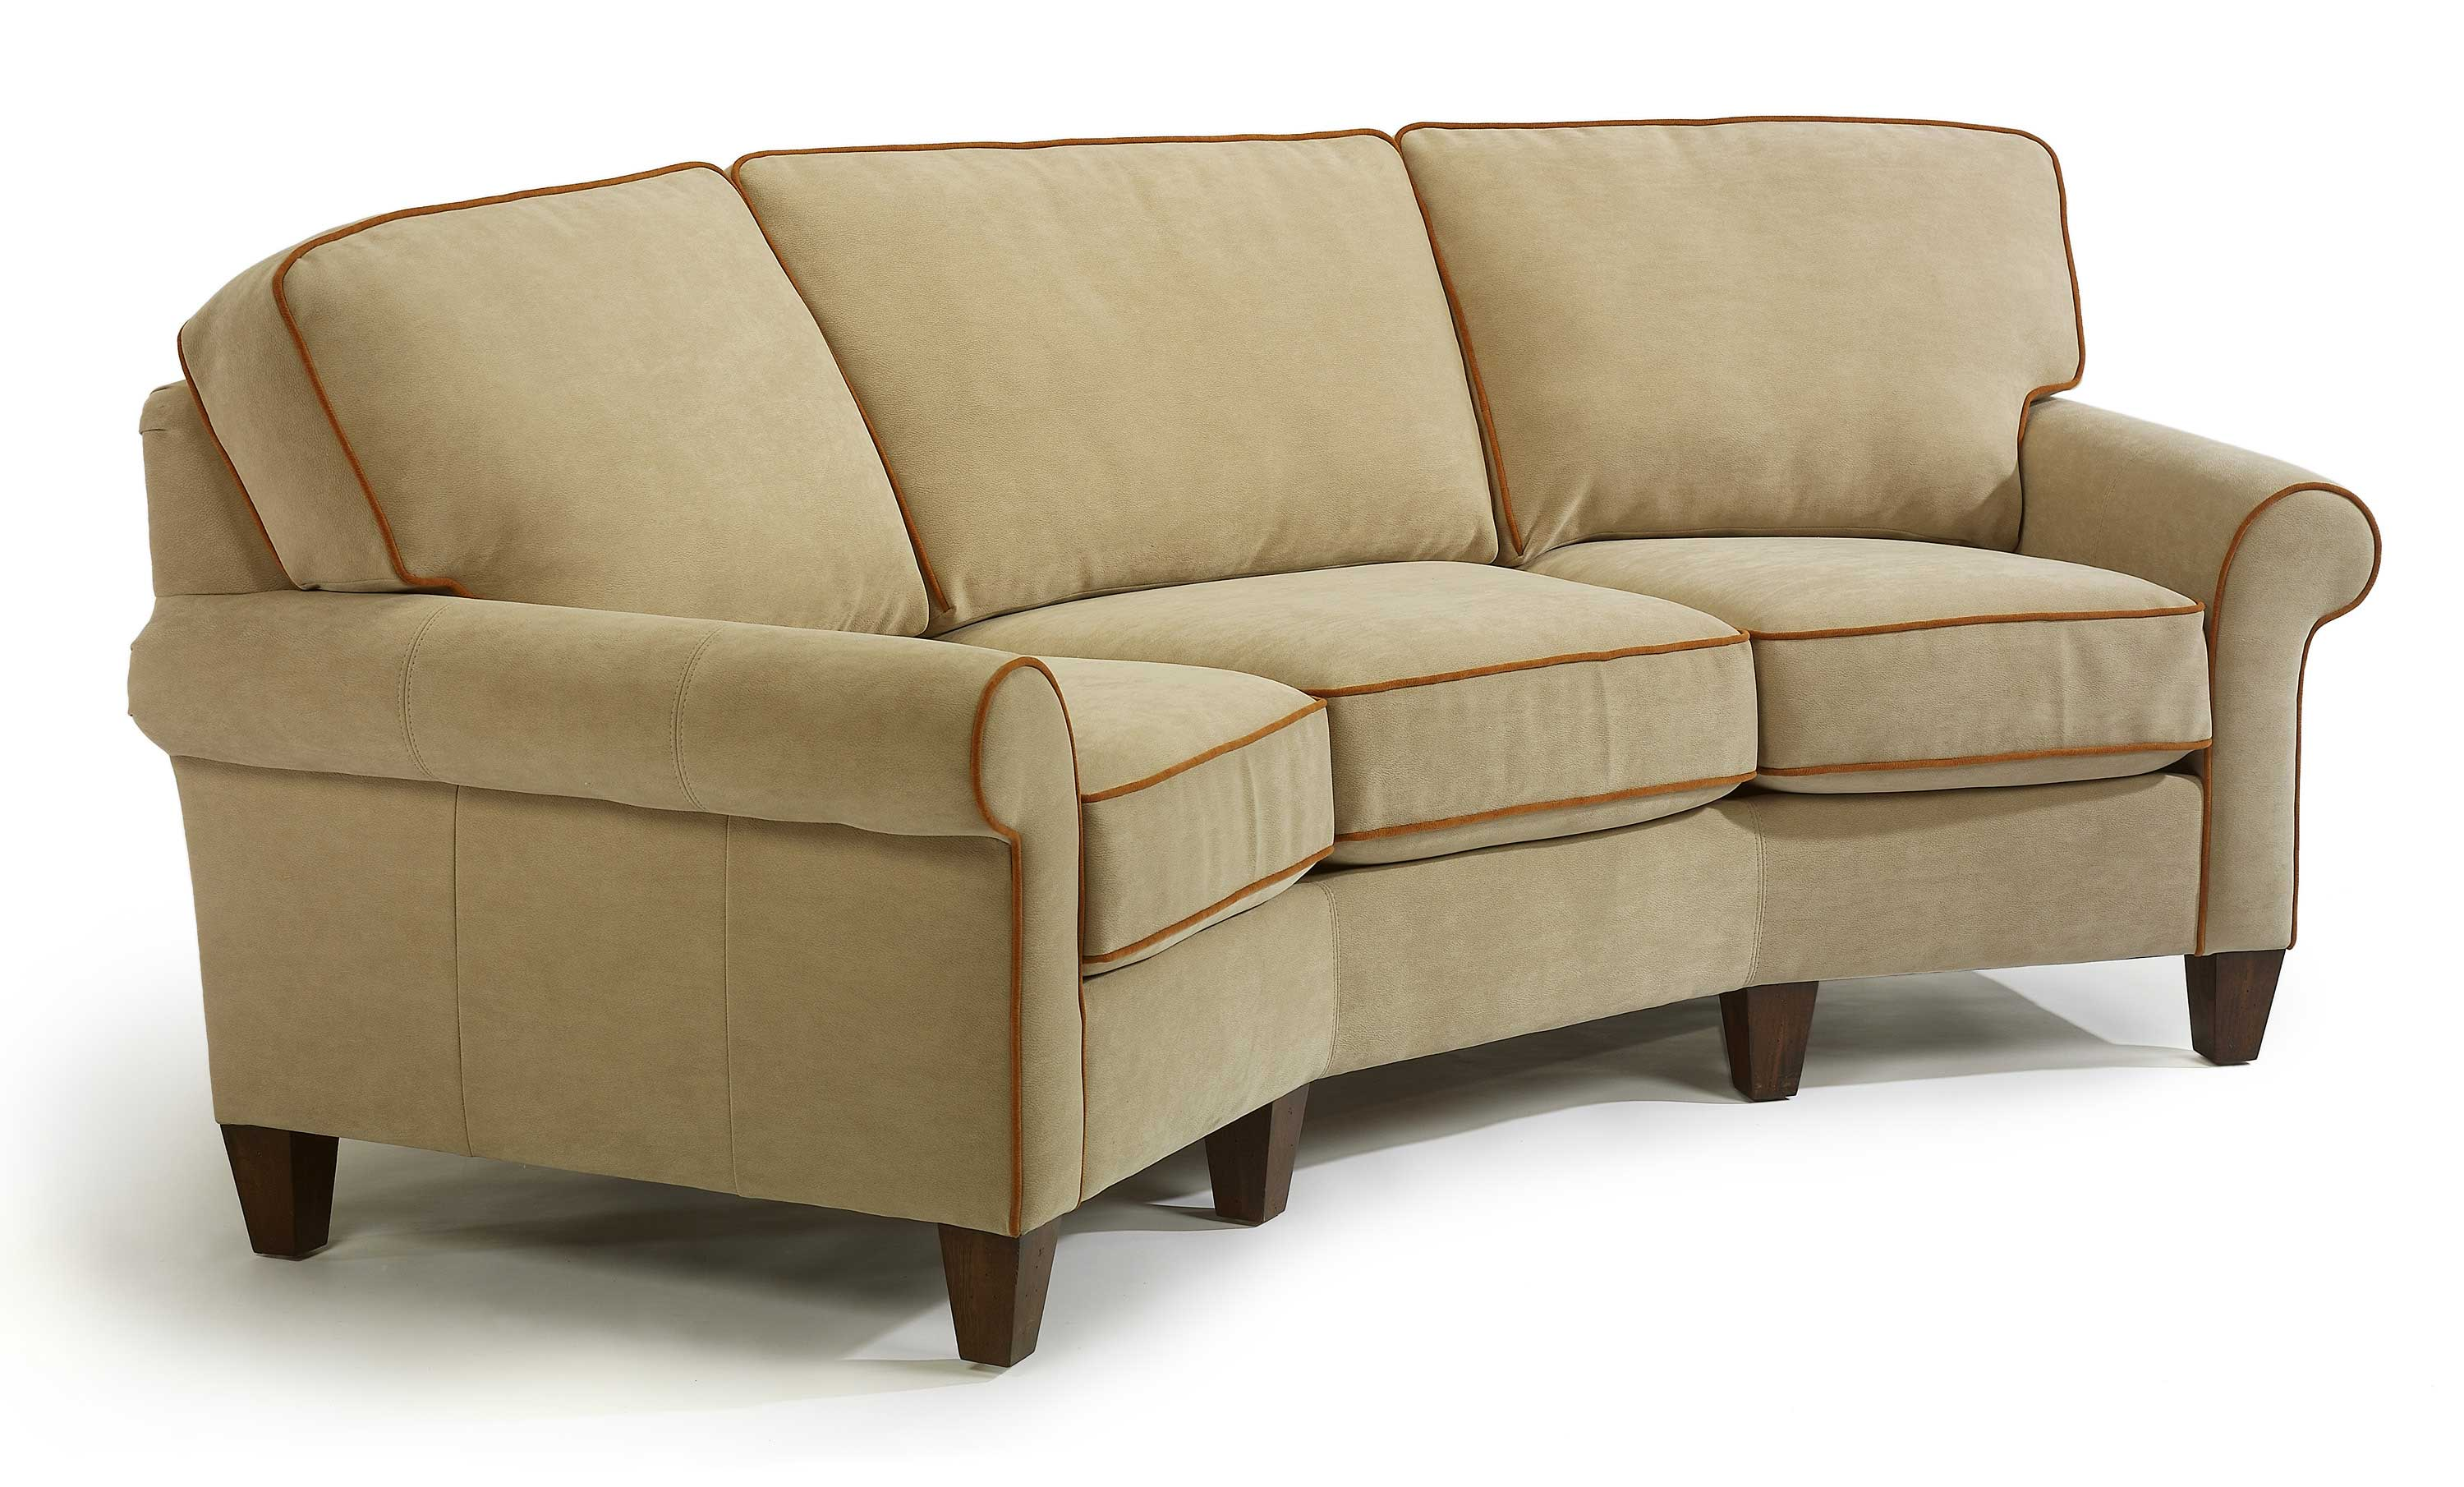 Conversation sofa archives jasen 39 s fine furniture since for Conversation sofa